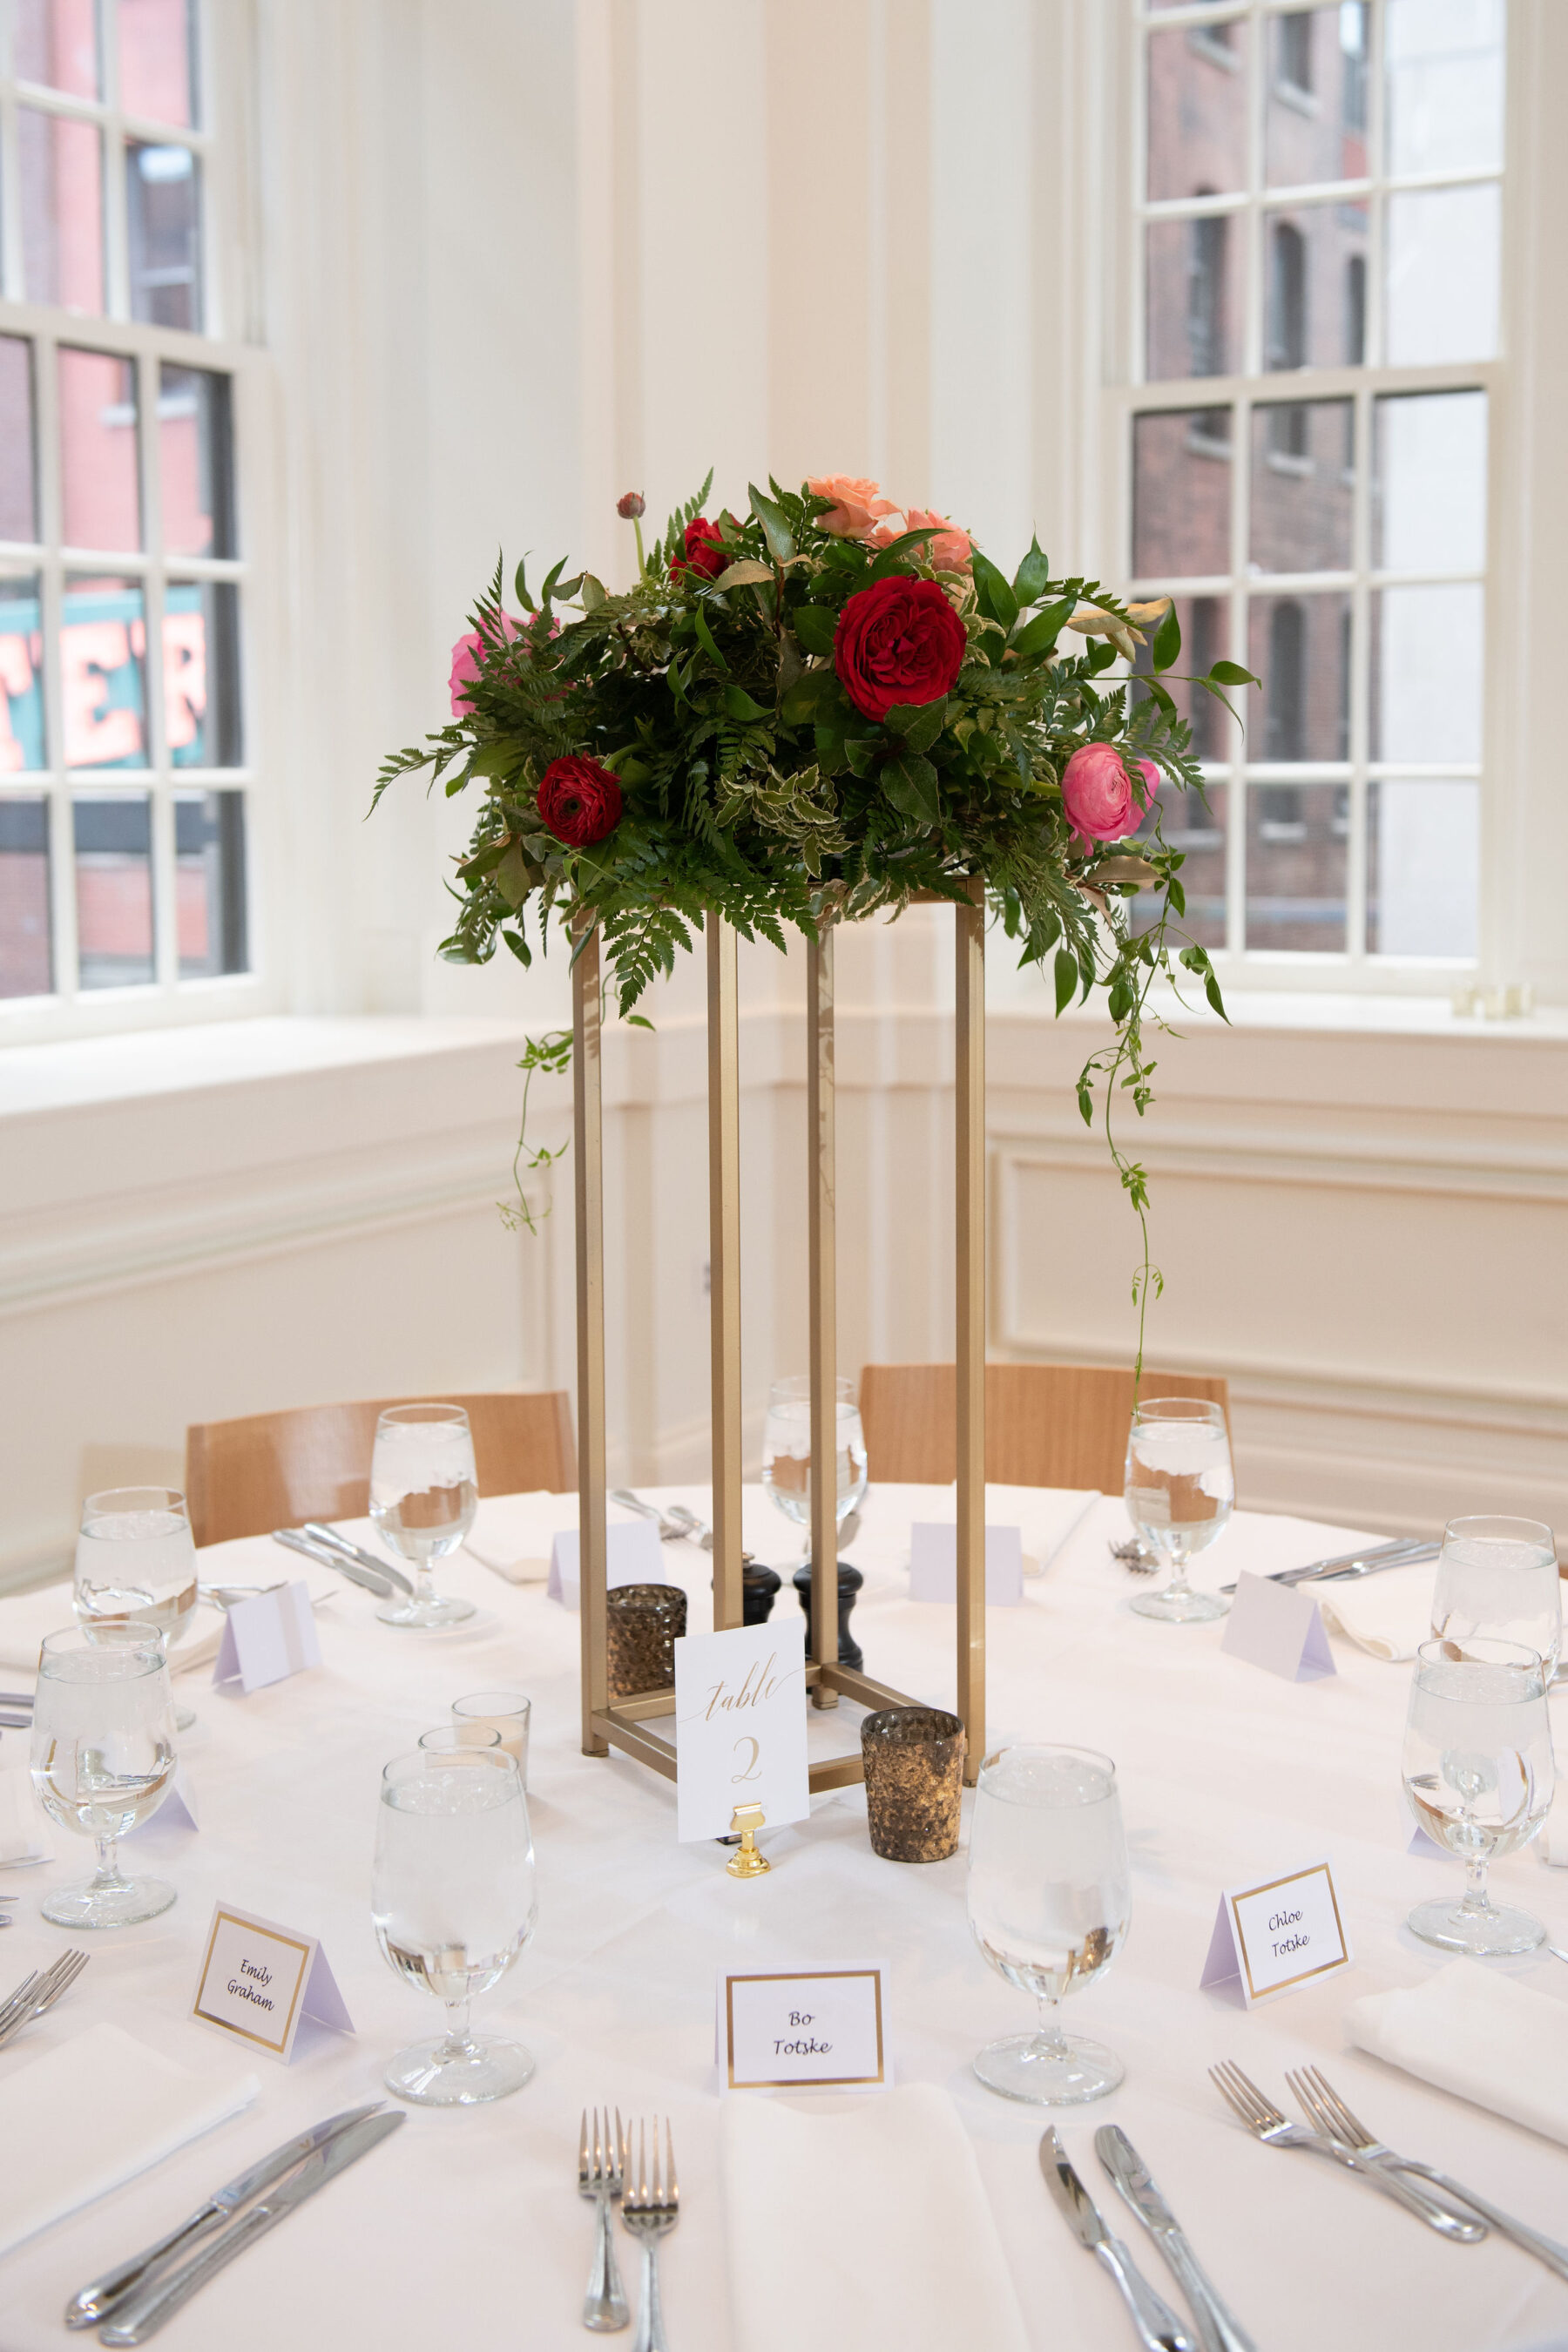 Tall wedding centerpieces: Summer Tennessee Wedding at Noelle from Jayde J. Smith Events featured on Nashville Bride Guide